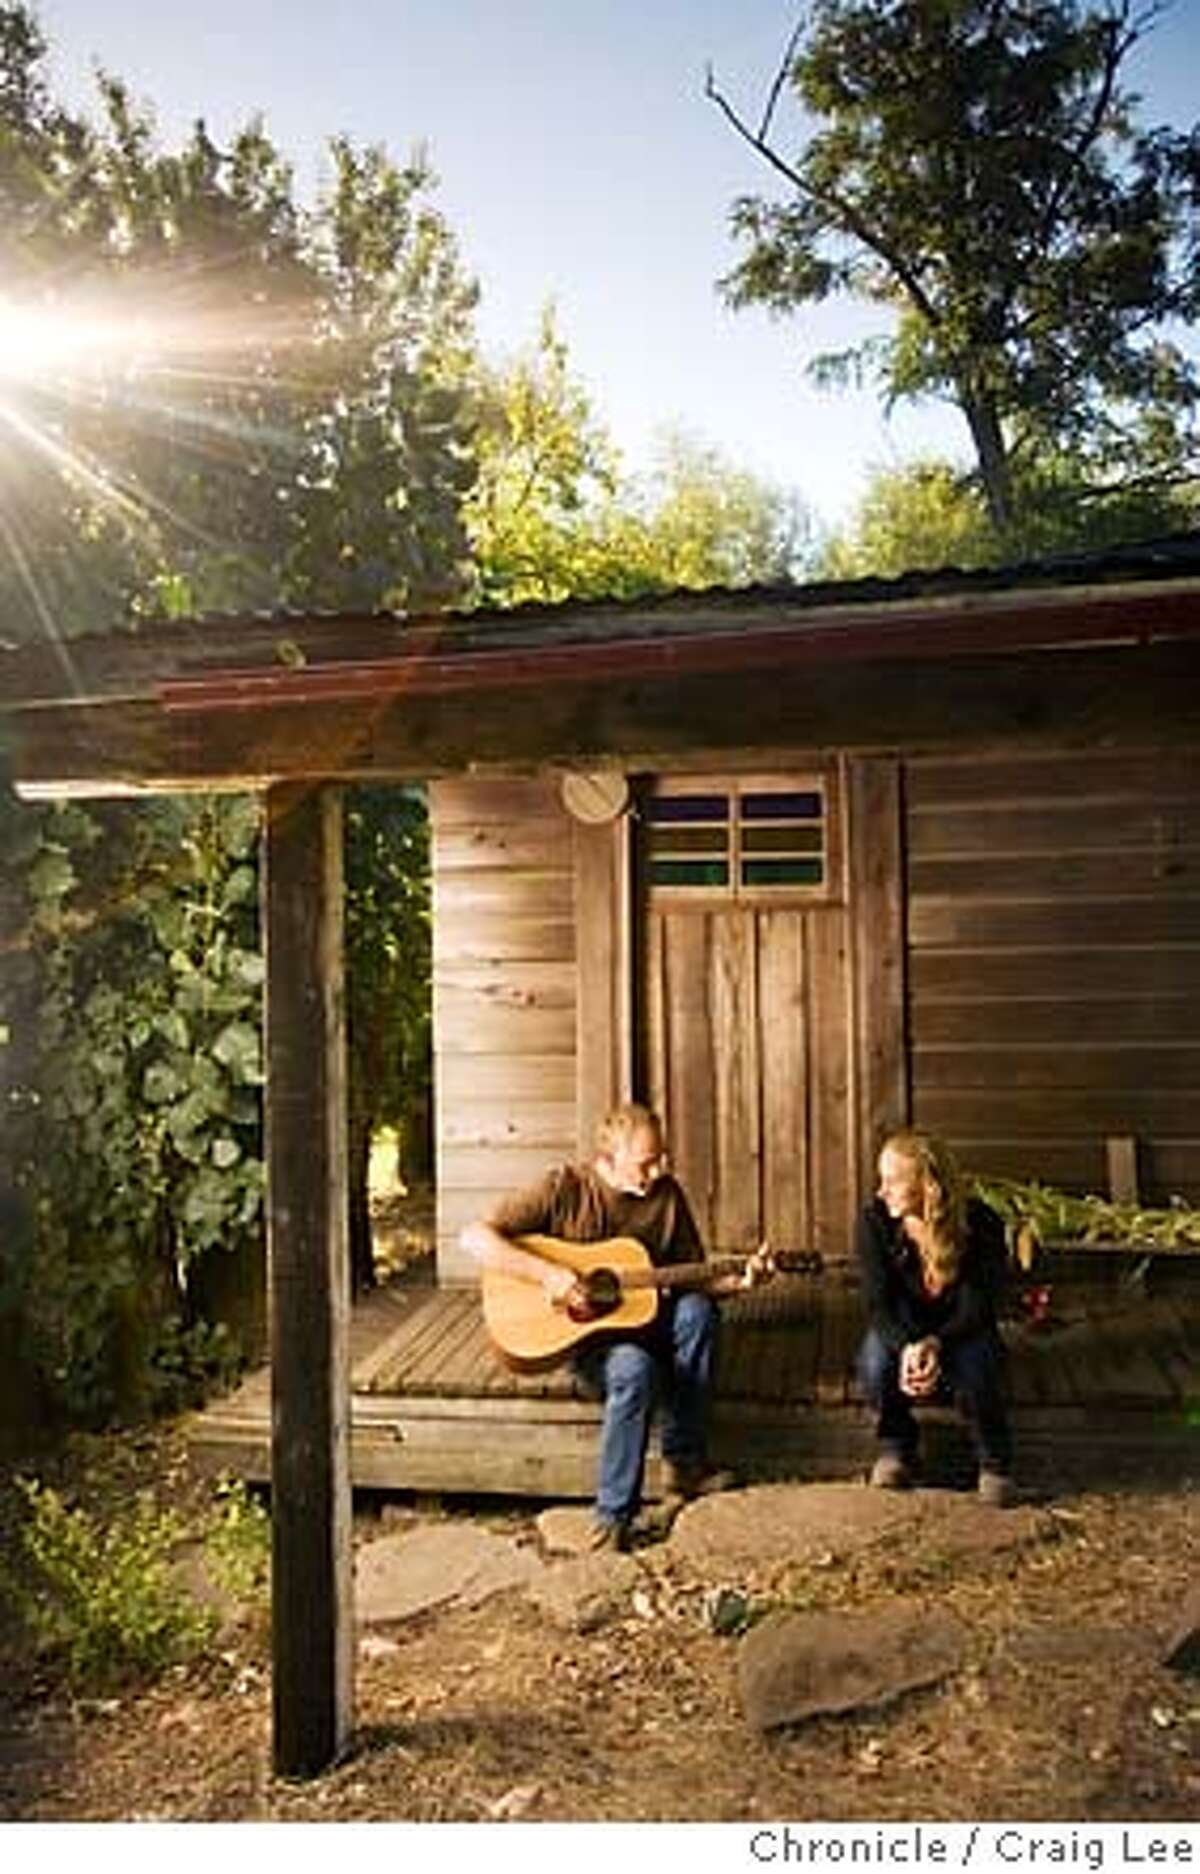 OTHERNAPA07_311_cl.jpg Story about Napa Valley wineries that have avoided the spotlight. Lore Olds and his daughter Mayacamus, owner of Sky Vineyards at the top of 2200 feet Mount Veeder. Photo of Lore (left) and Mayacamus (right), sitting and playing guitar on his front porch to the home he built in 1972 and where Mayacamus grew up. on 8/24/07 in Napa. photo by Craig Lee / The Chronicle Ran on: 09-02-2007 MANDATORY CREDIT FOR PHOTOG AND SF CHRONICLE/NO SALES-MAGS OUT